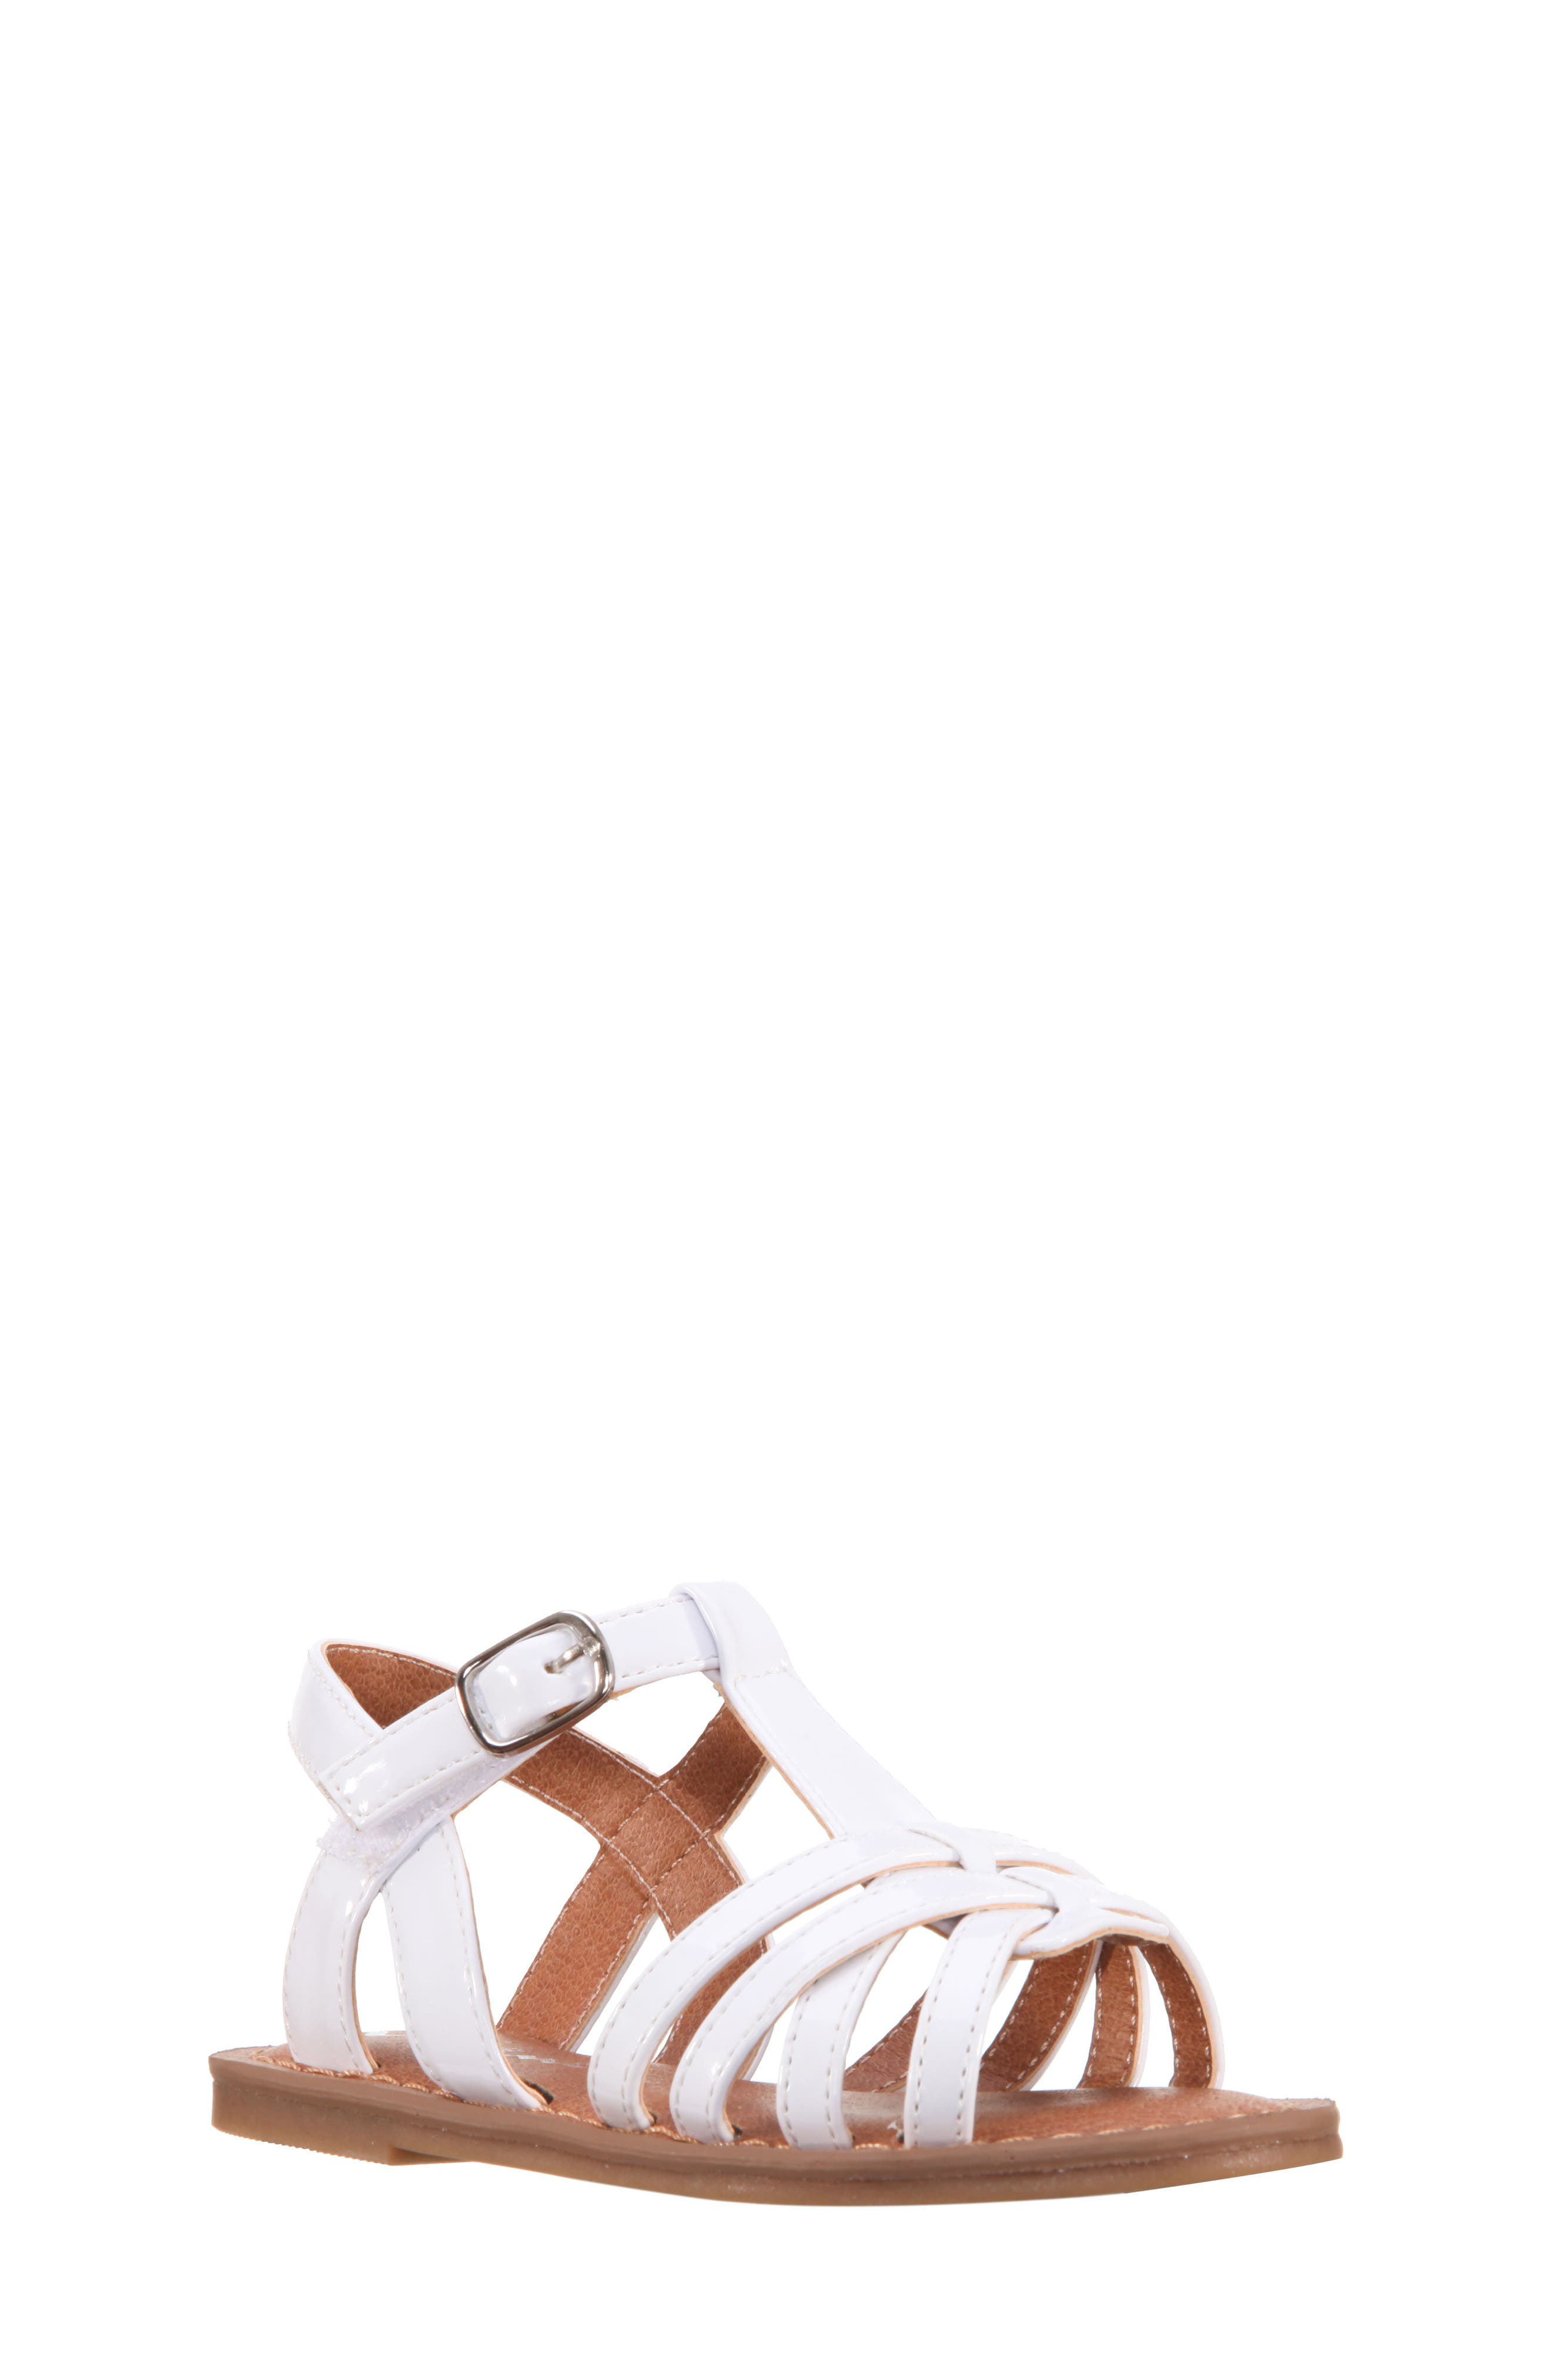 Thereasa Ankle Strap Sandal,                         Main,                         color, White Patent